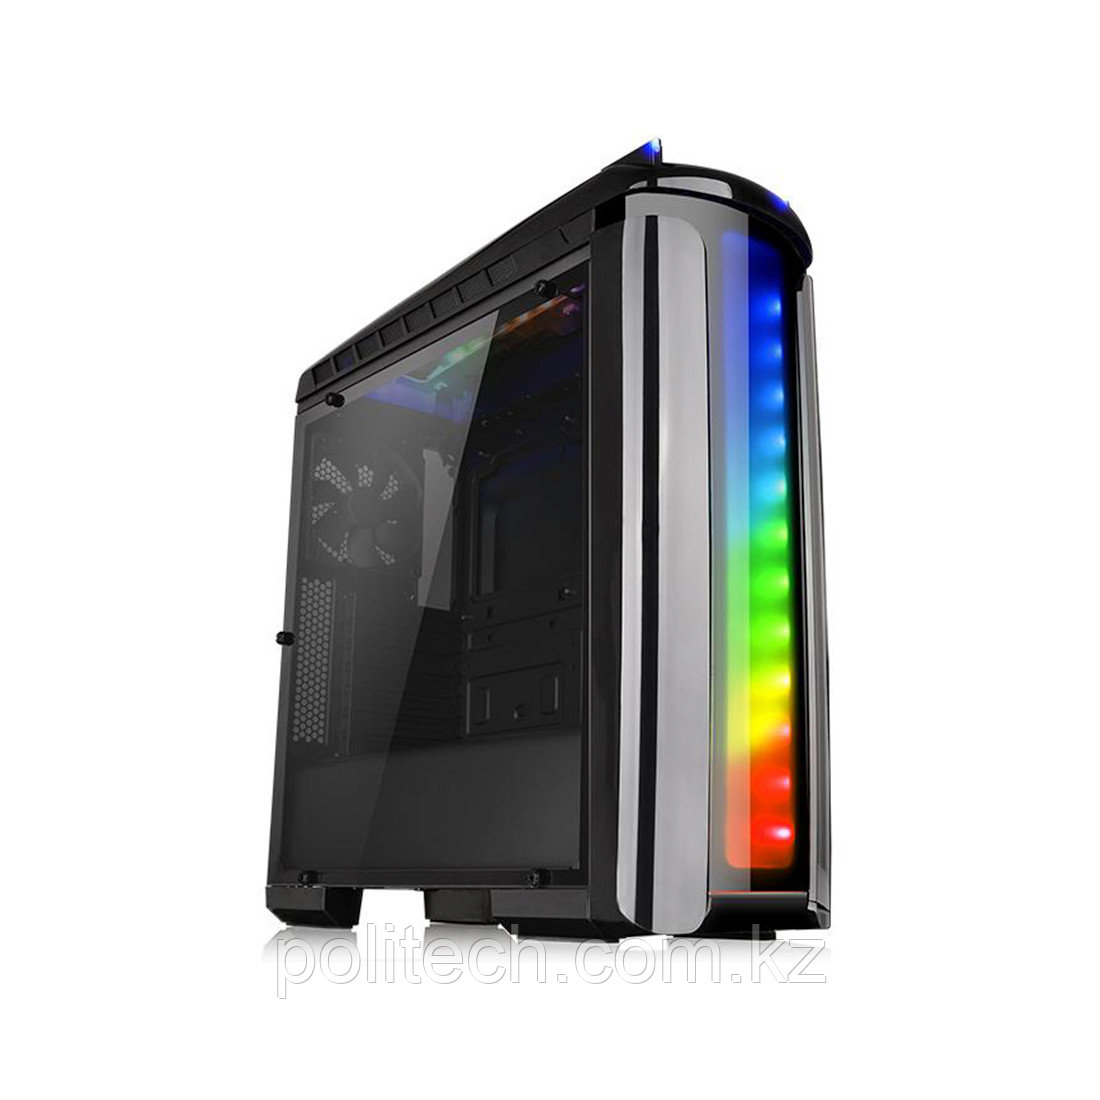 Компьютерный корпус Thermaltake Versa C22 RGB Black без Б/П